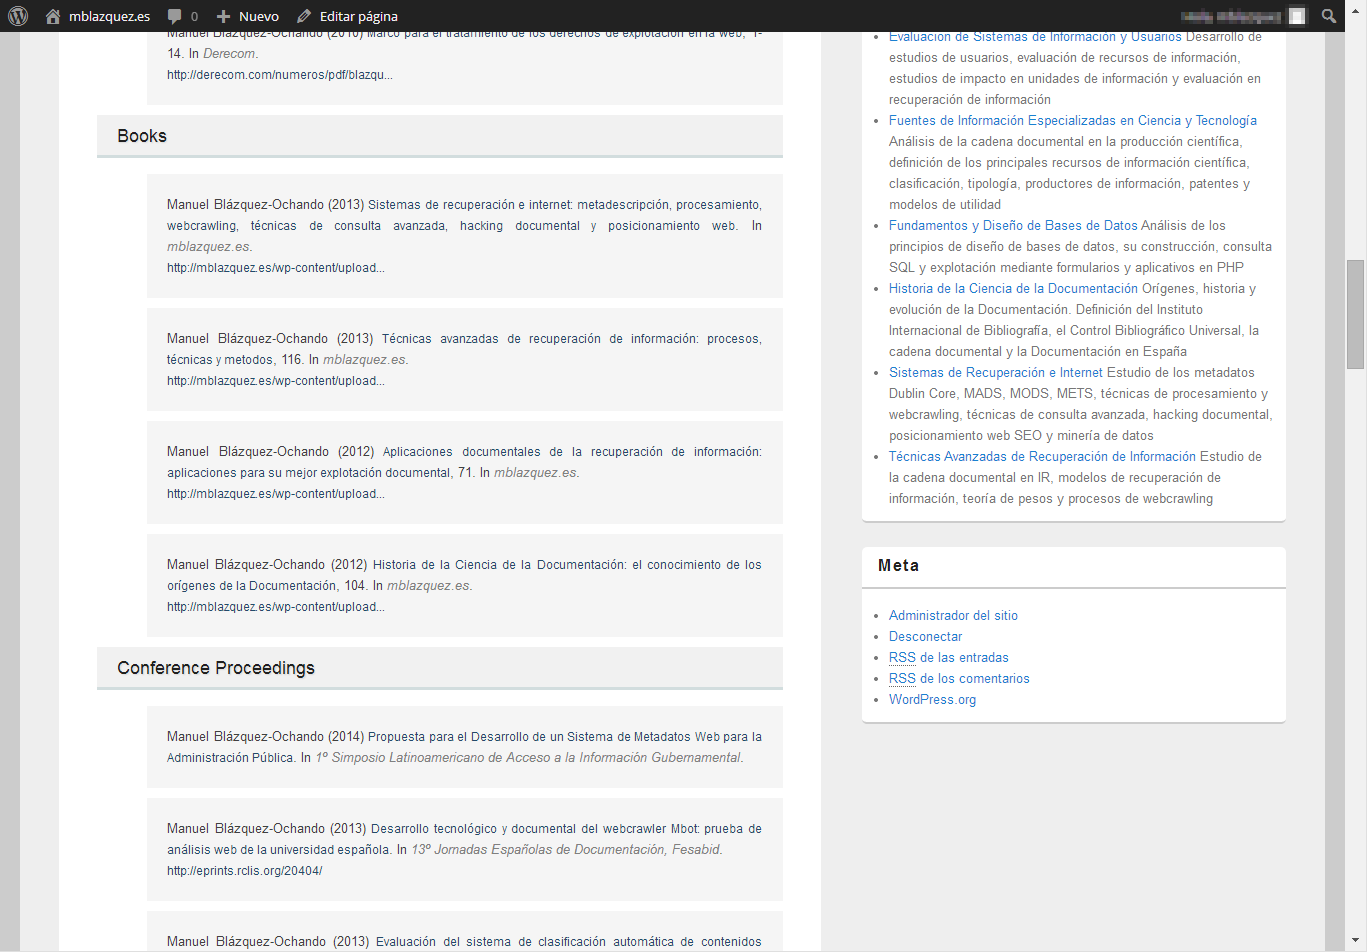 mendeley-profile screenshot 4